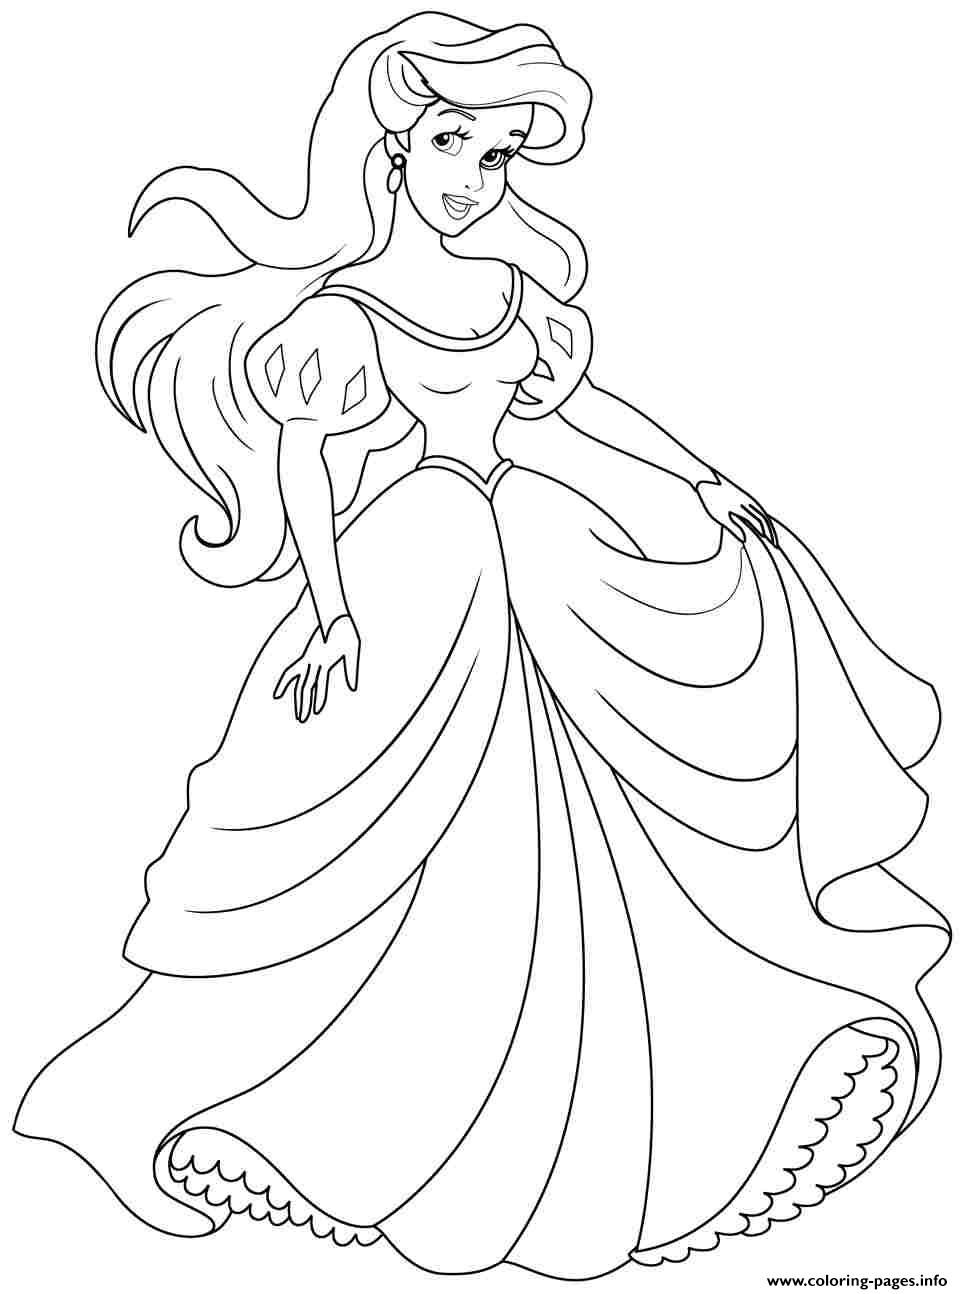 Print Princess Ariel Human Coloring Pages Princess Princess Ariel Coloring Page Printable